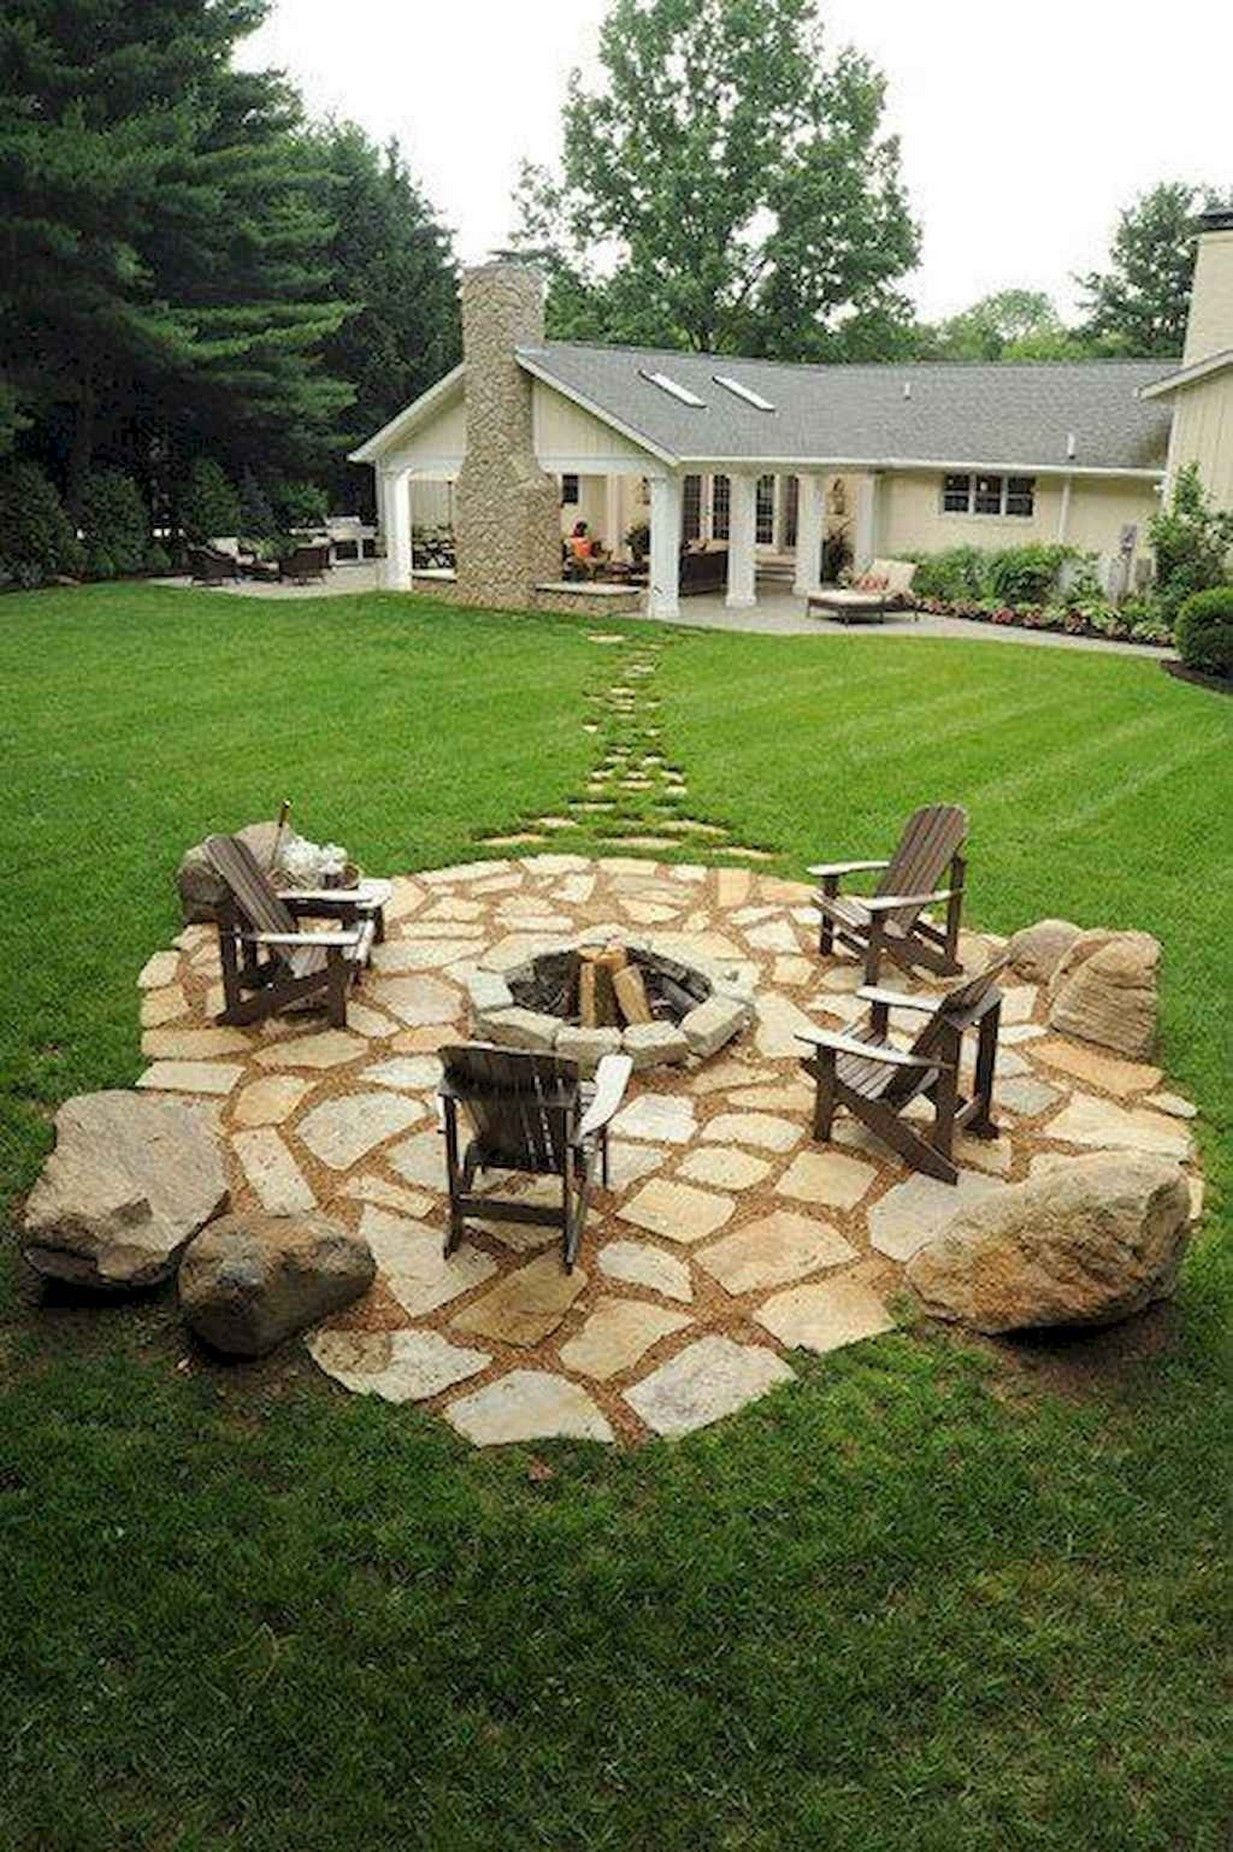 47 Successful Backyard Landscape Ideas With Images Outdoor